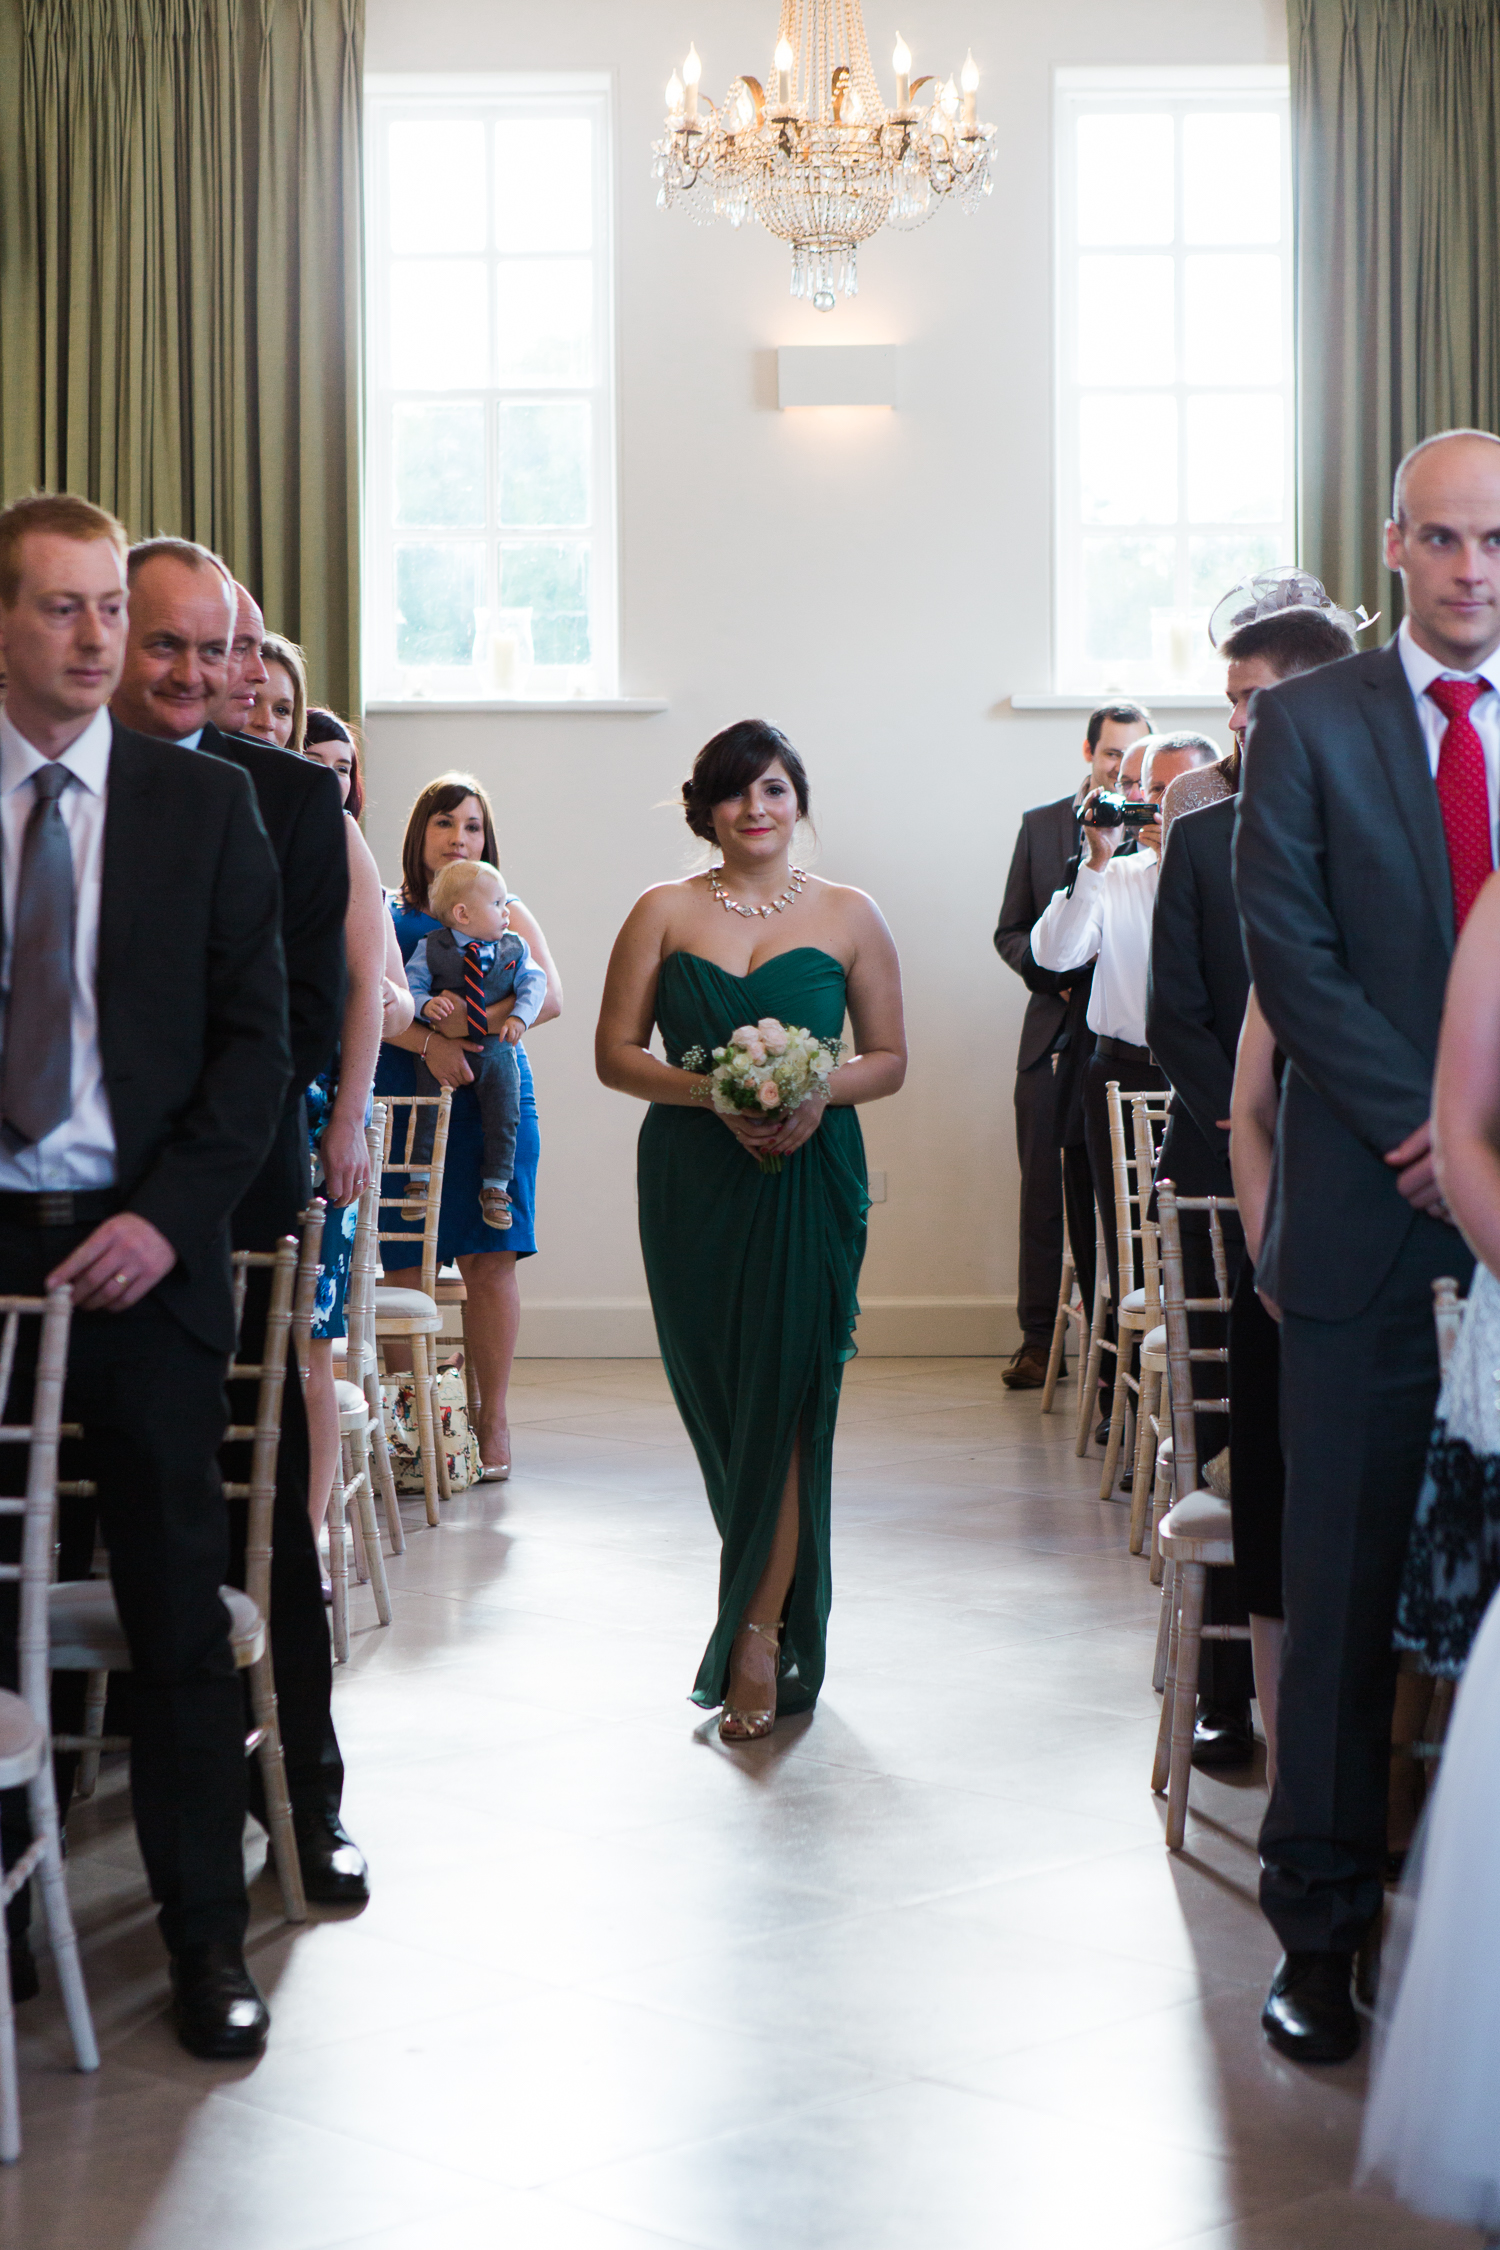 Wedding ceremony at Iscoyd Park by Cheshire Wedding Photographer photo